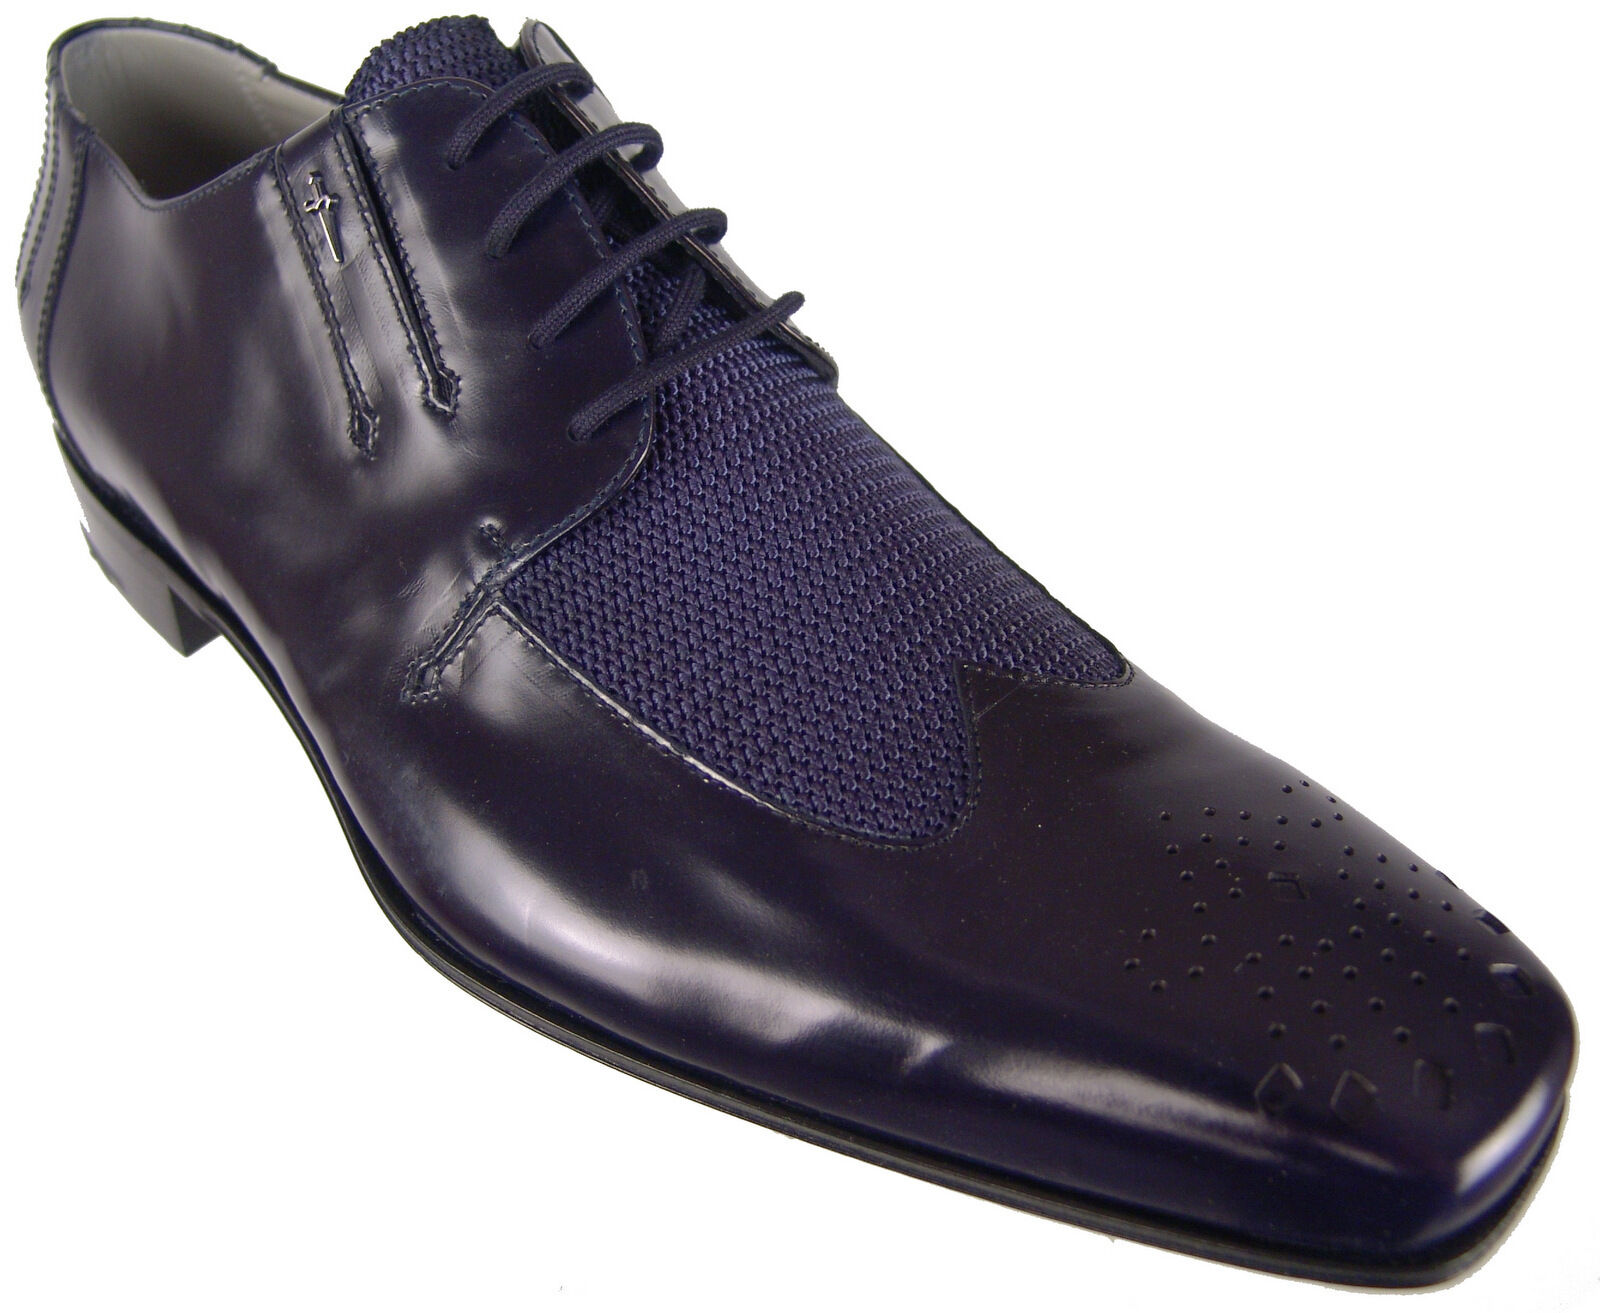 on sale 063f3 d5dda Authentic 870 Cesare Paciotti Navy Oxfords US 8.5 Italian Italian Italian  Designer scarpe 4c06c3